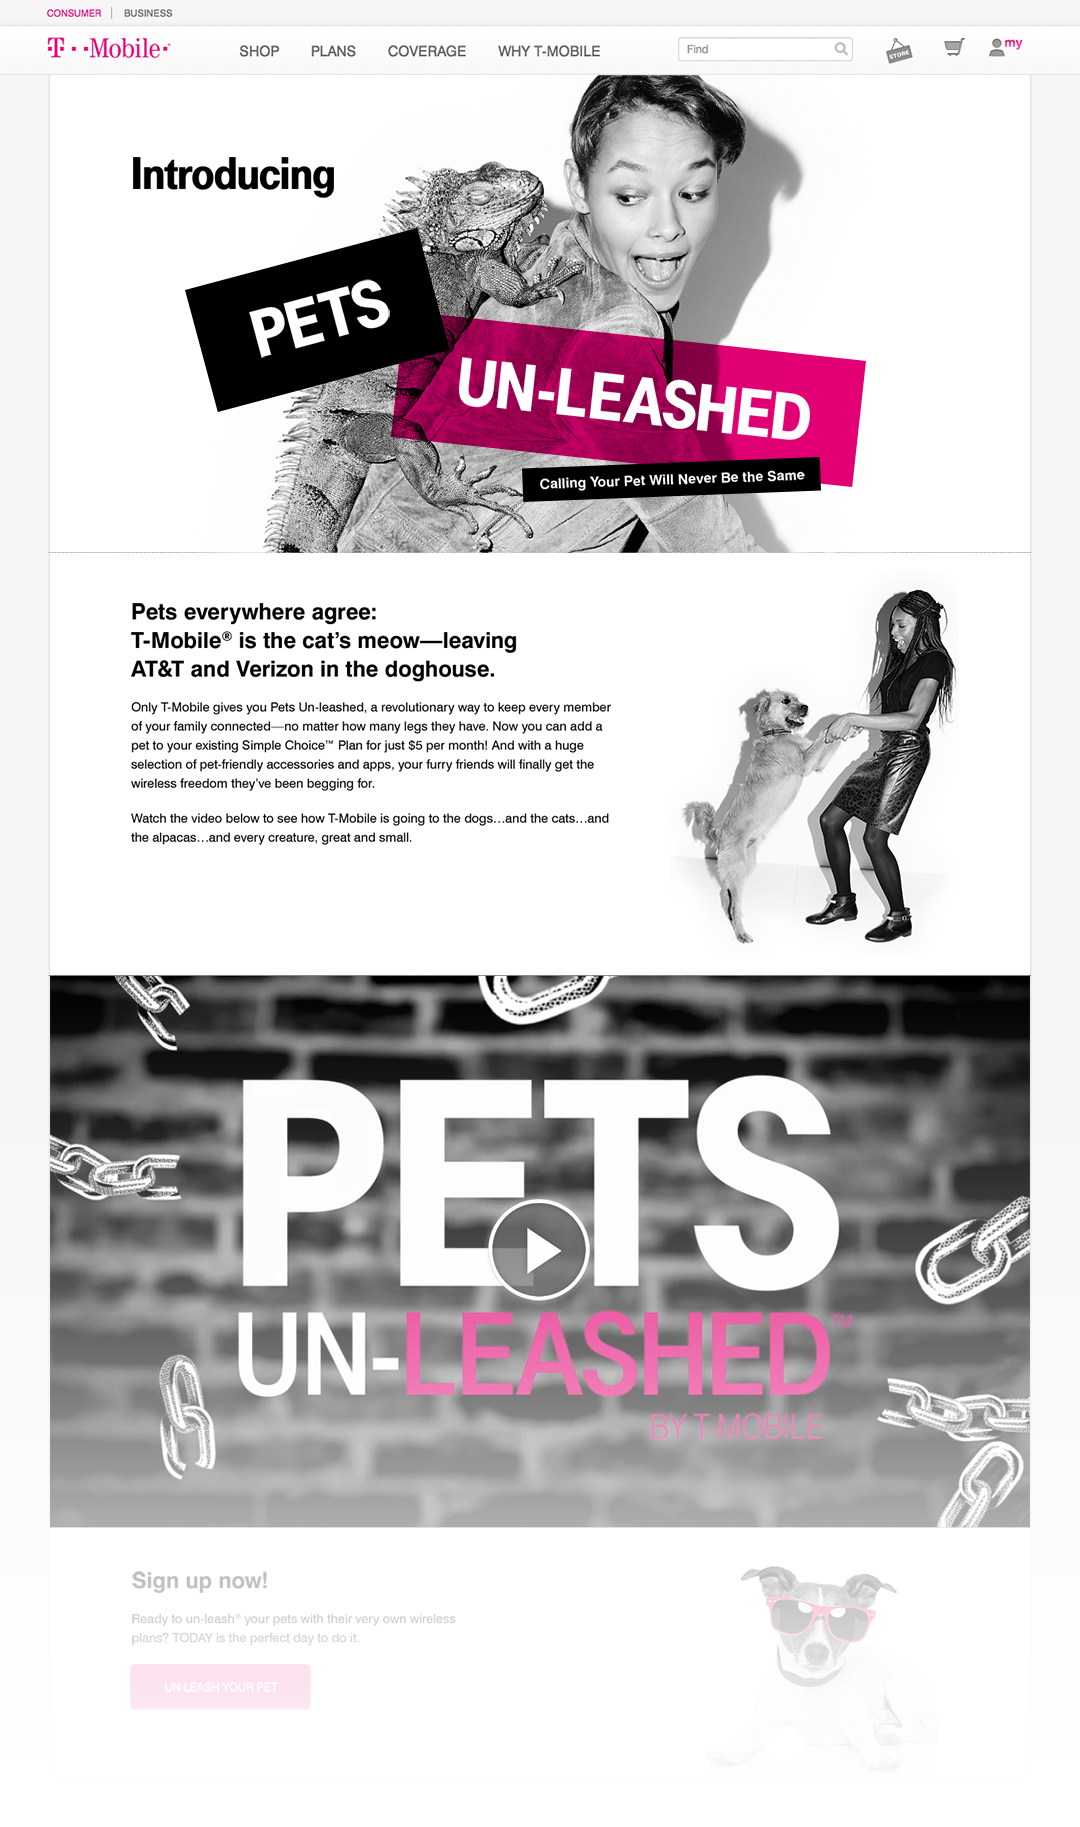 T-Mobile Pets Unleashed landing page